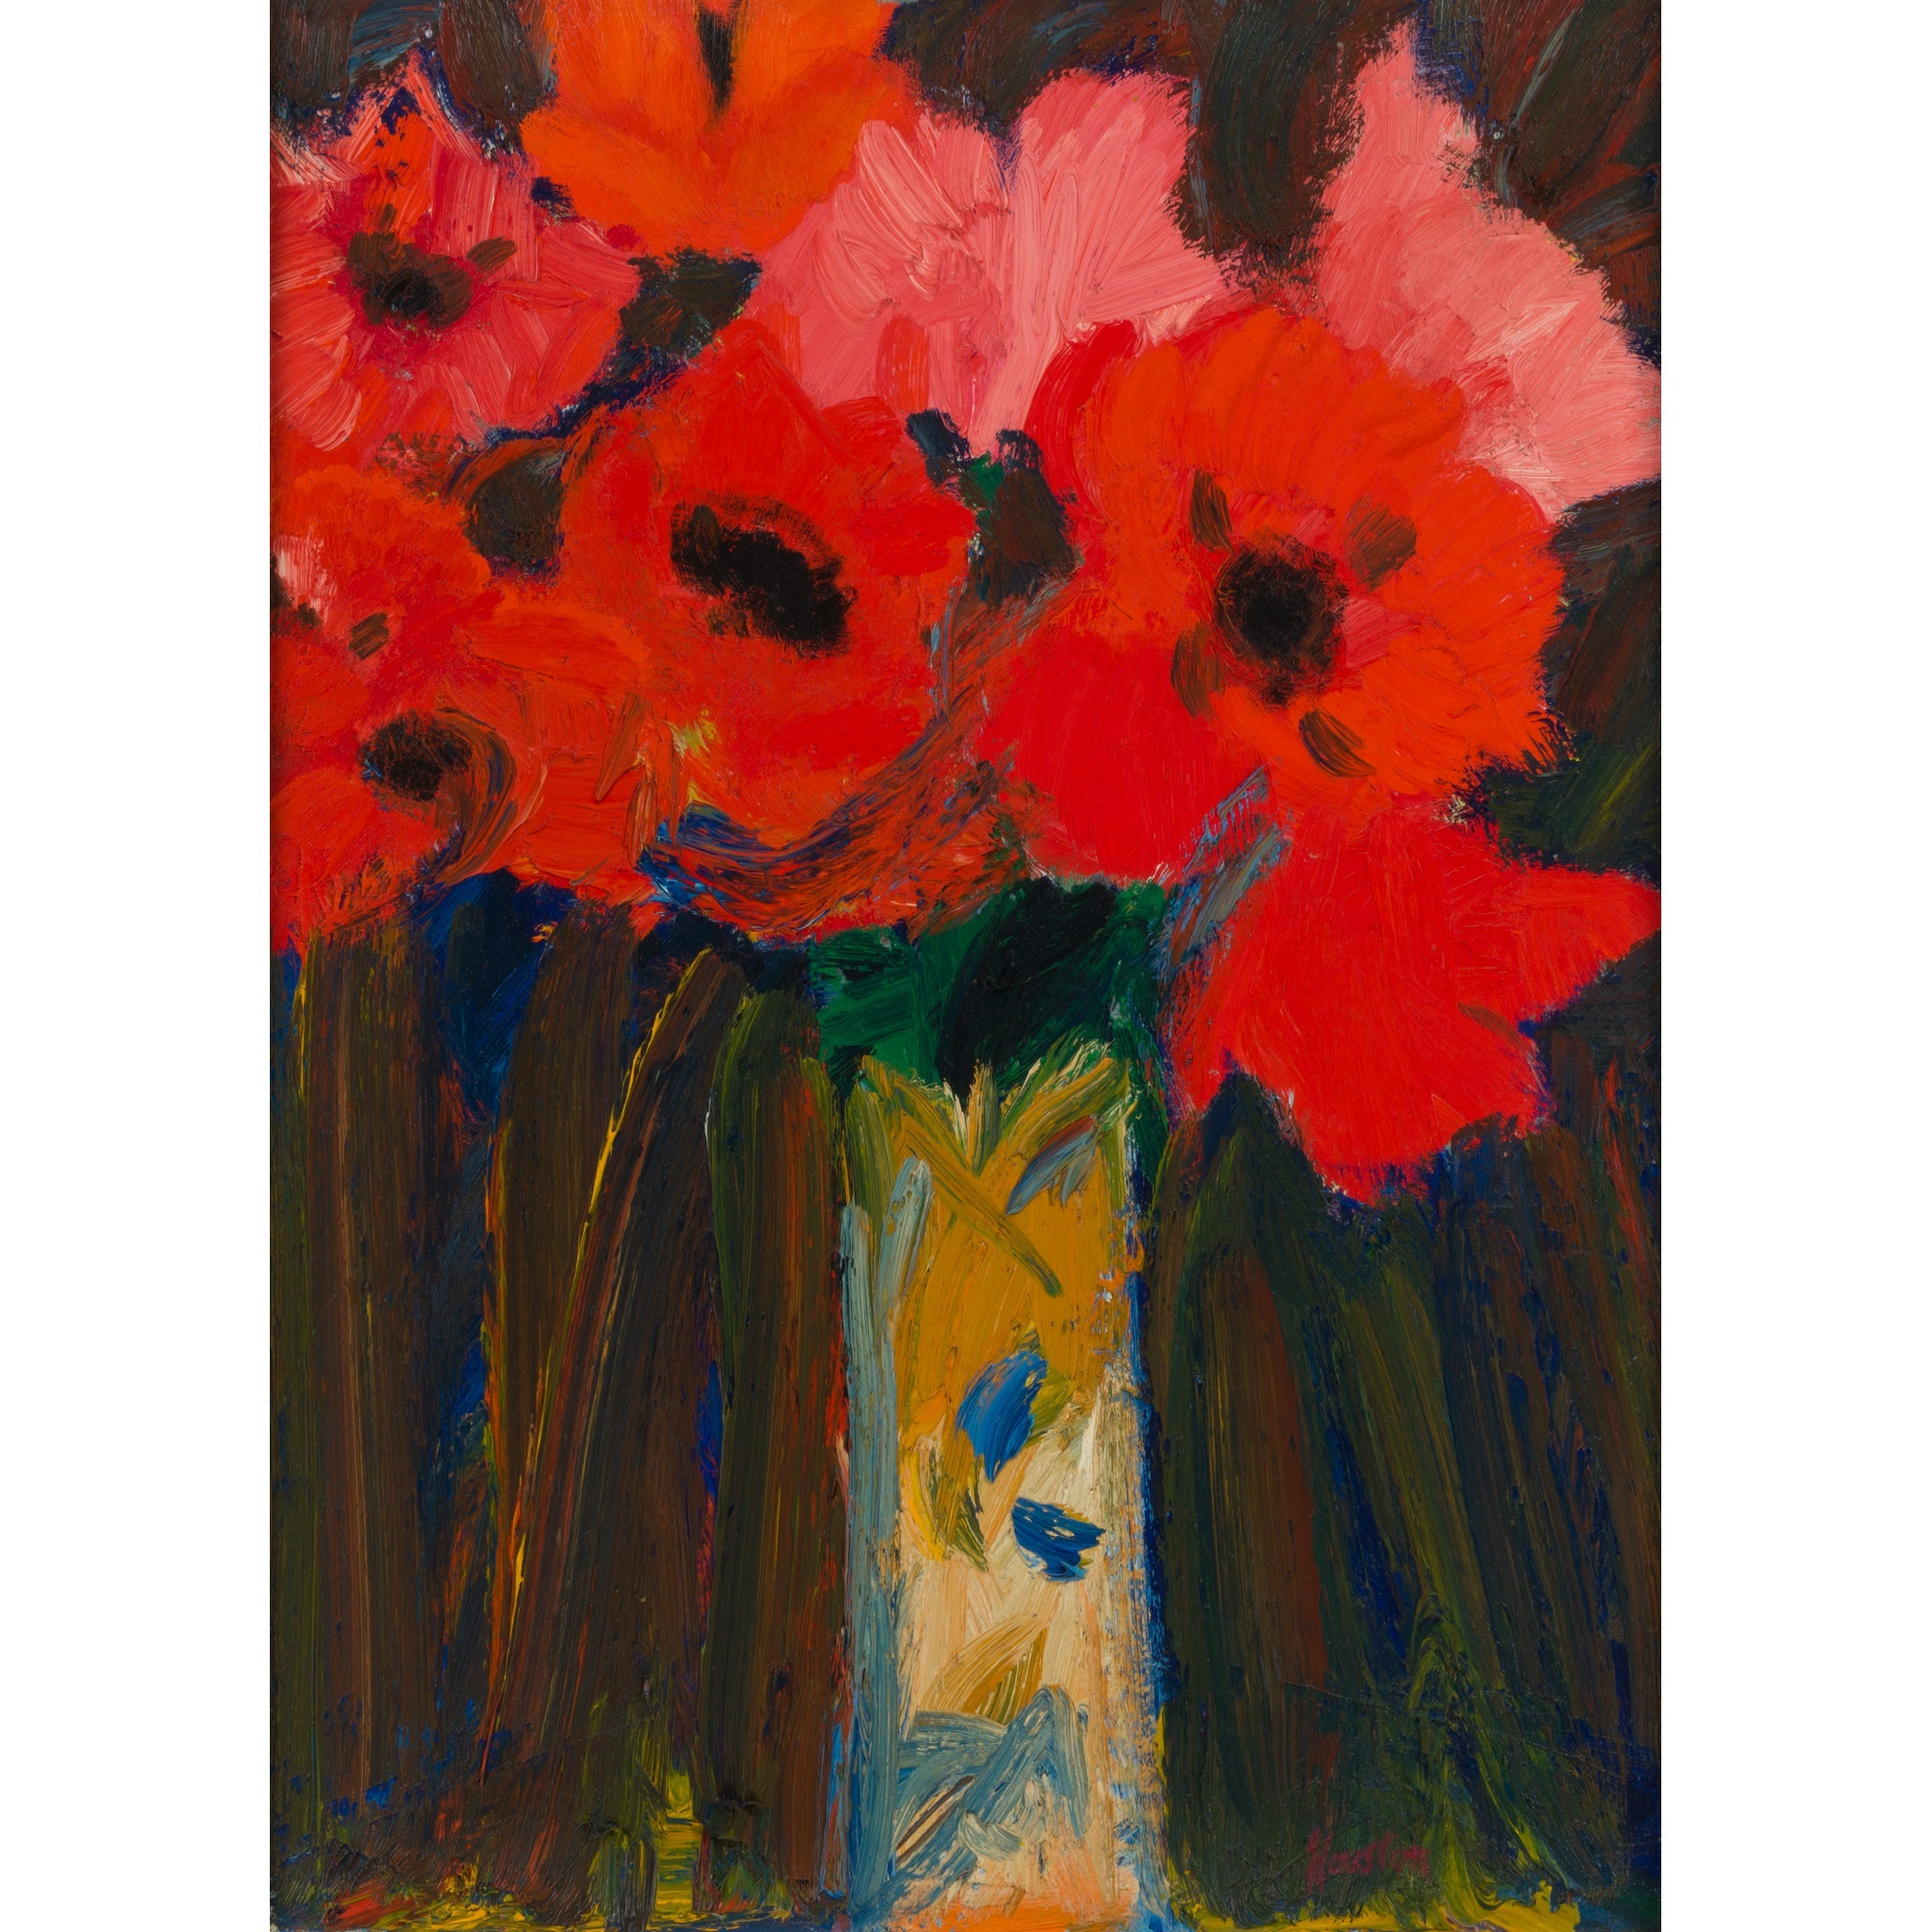 JOHN HOUSTON R.S.A., R.S.W., S.S.A. (SCOTTISH 1930-2008) | ORIENTAL POPPIES 1 Signed, signed, inscribed and dated on the stretcher 1984, oil on canvas | 51cm x 41cm (20in x 16in) | Exhibited: Mercury Gallery, London 1986; Dr. Ruth Page until 2015 | Sold for £10,625 + fees